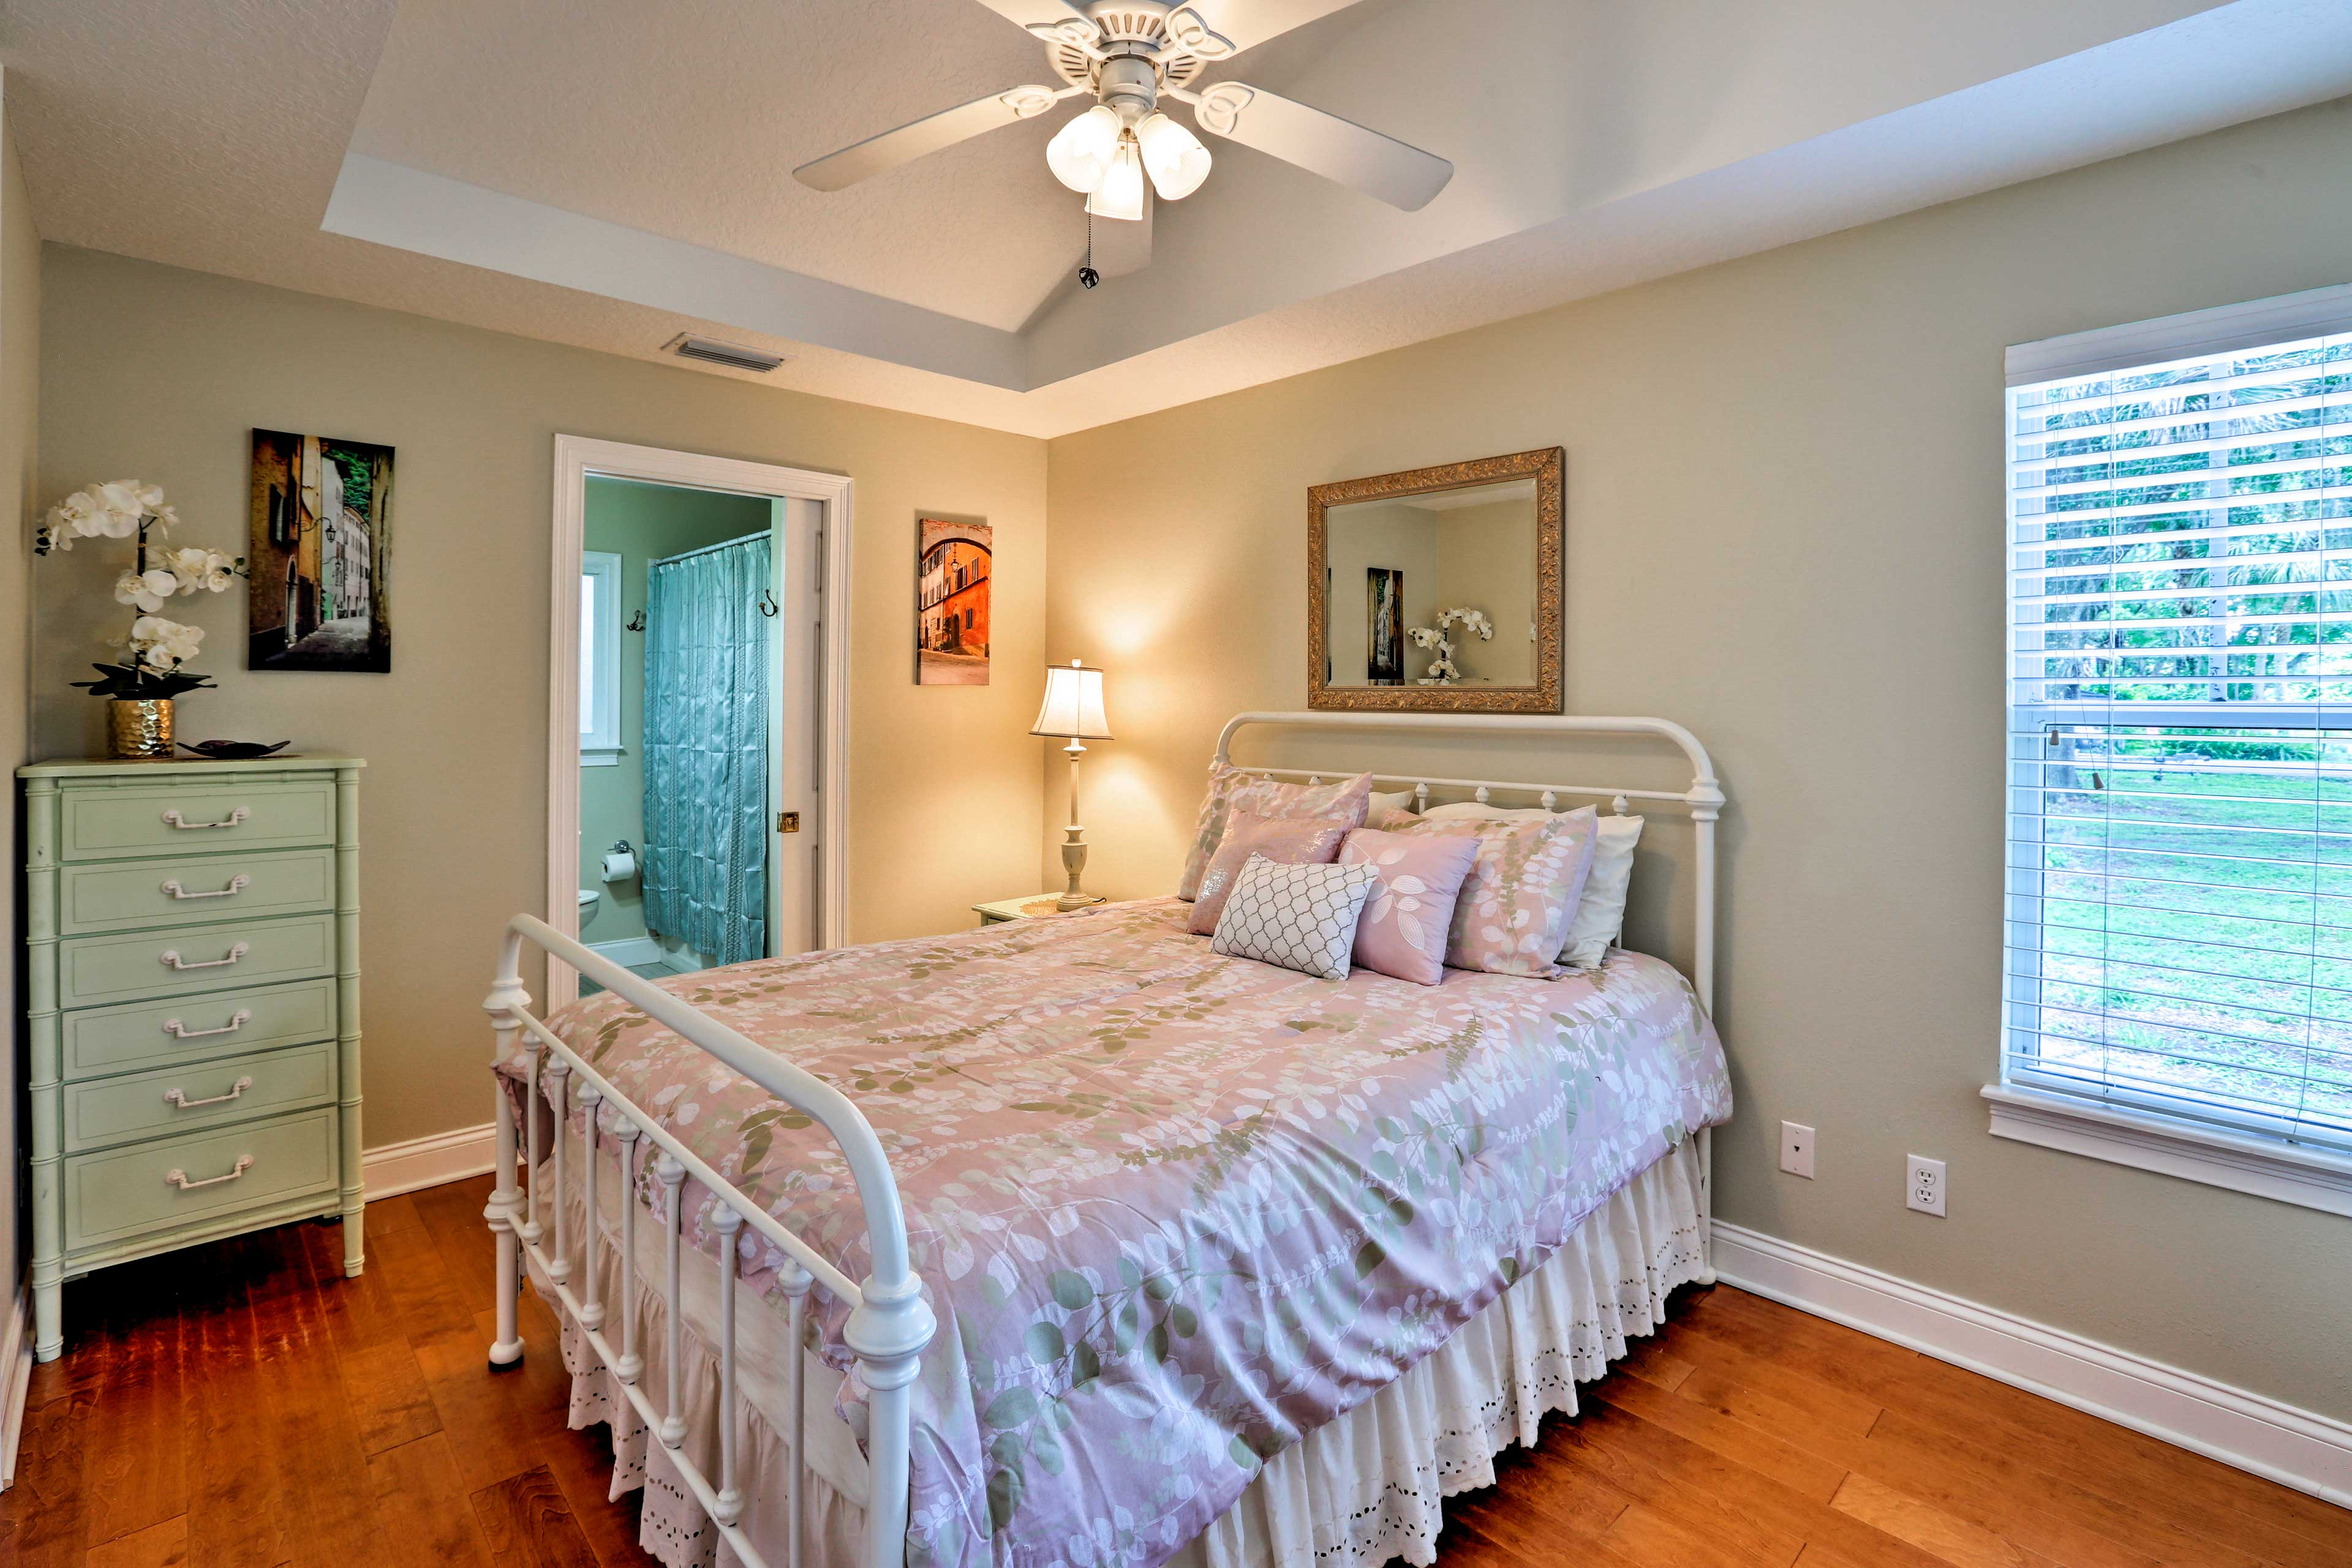 This queen bedroom is a dream come true.